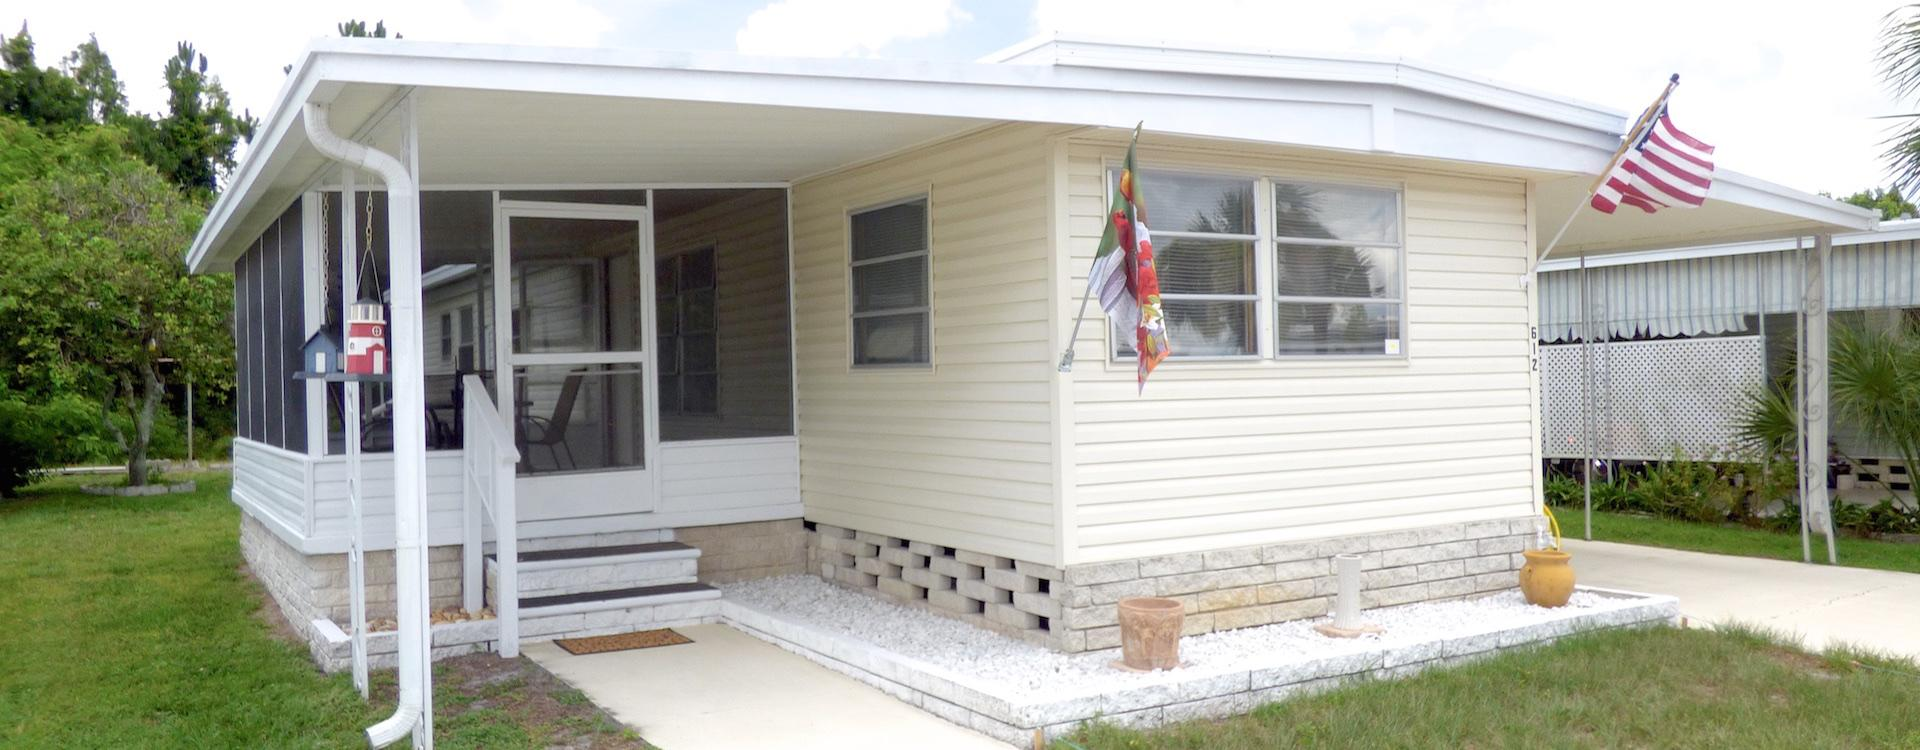 mobile homes for sale in dunedin fl with Mobile Home For Sale Largo Fl Lincolnshire 612 on 2116 W Marjory Ave T a Fl 33606 together with Popular Driveway R also 1415 Main St Lot 208 Dunedin FL 34698 M63184 76723 likewise Page17 further Mobile Home For Sale Dunedin Fl Dunedin Rv Resort 133.